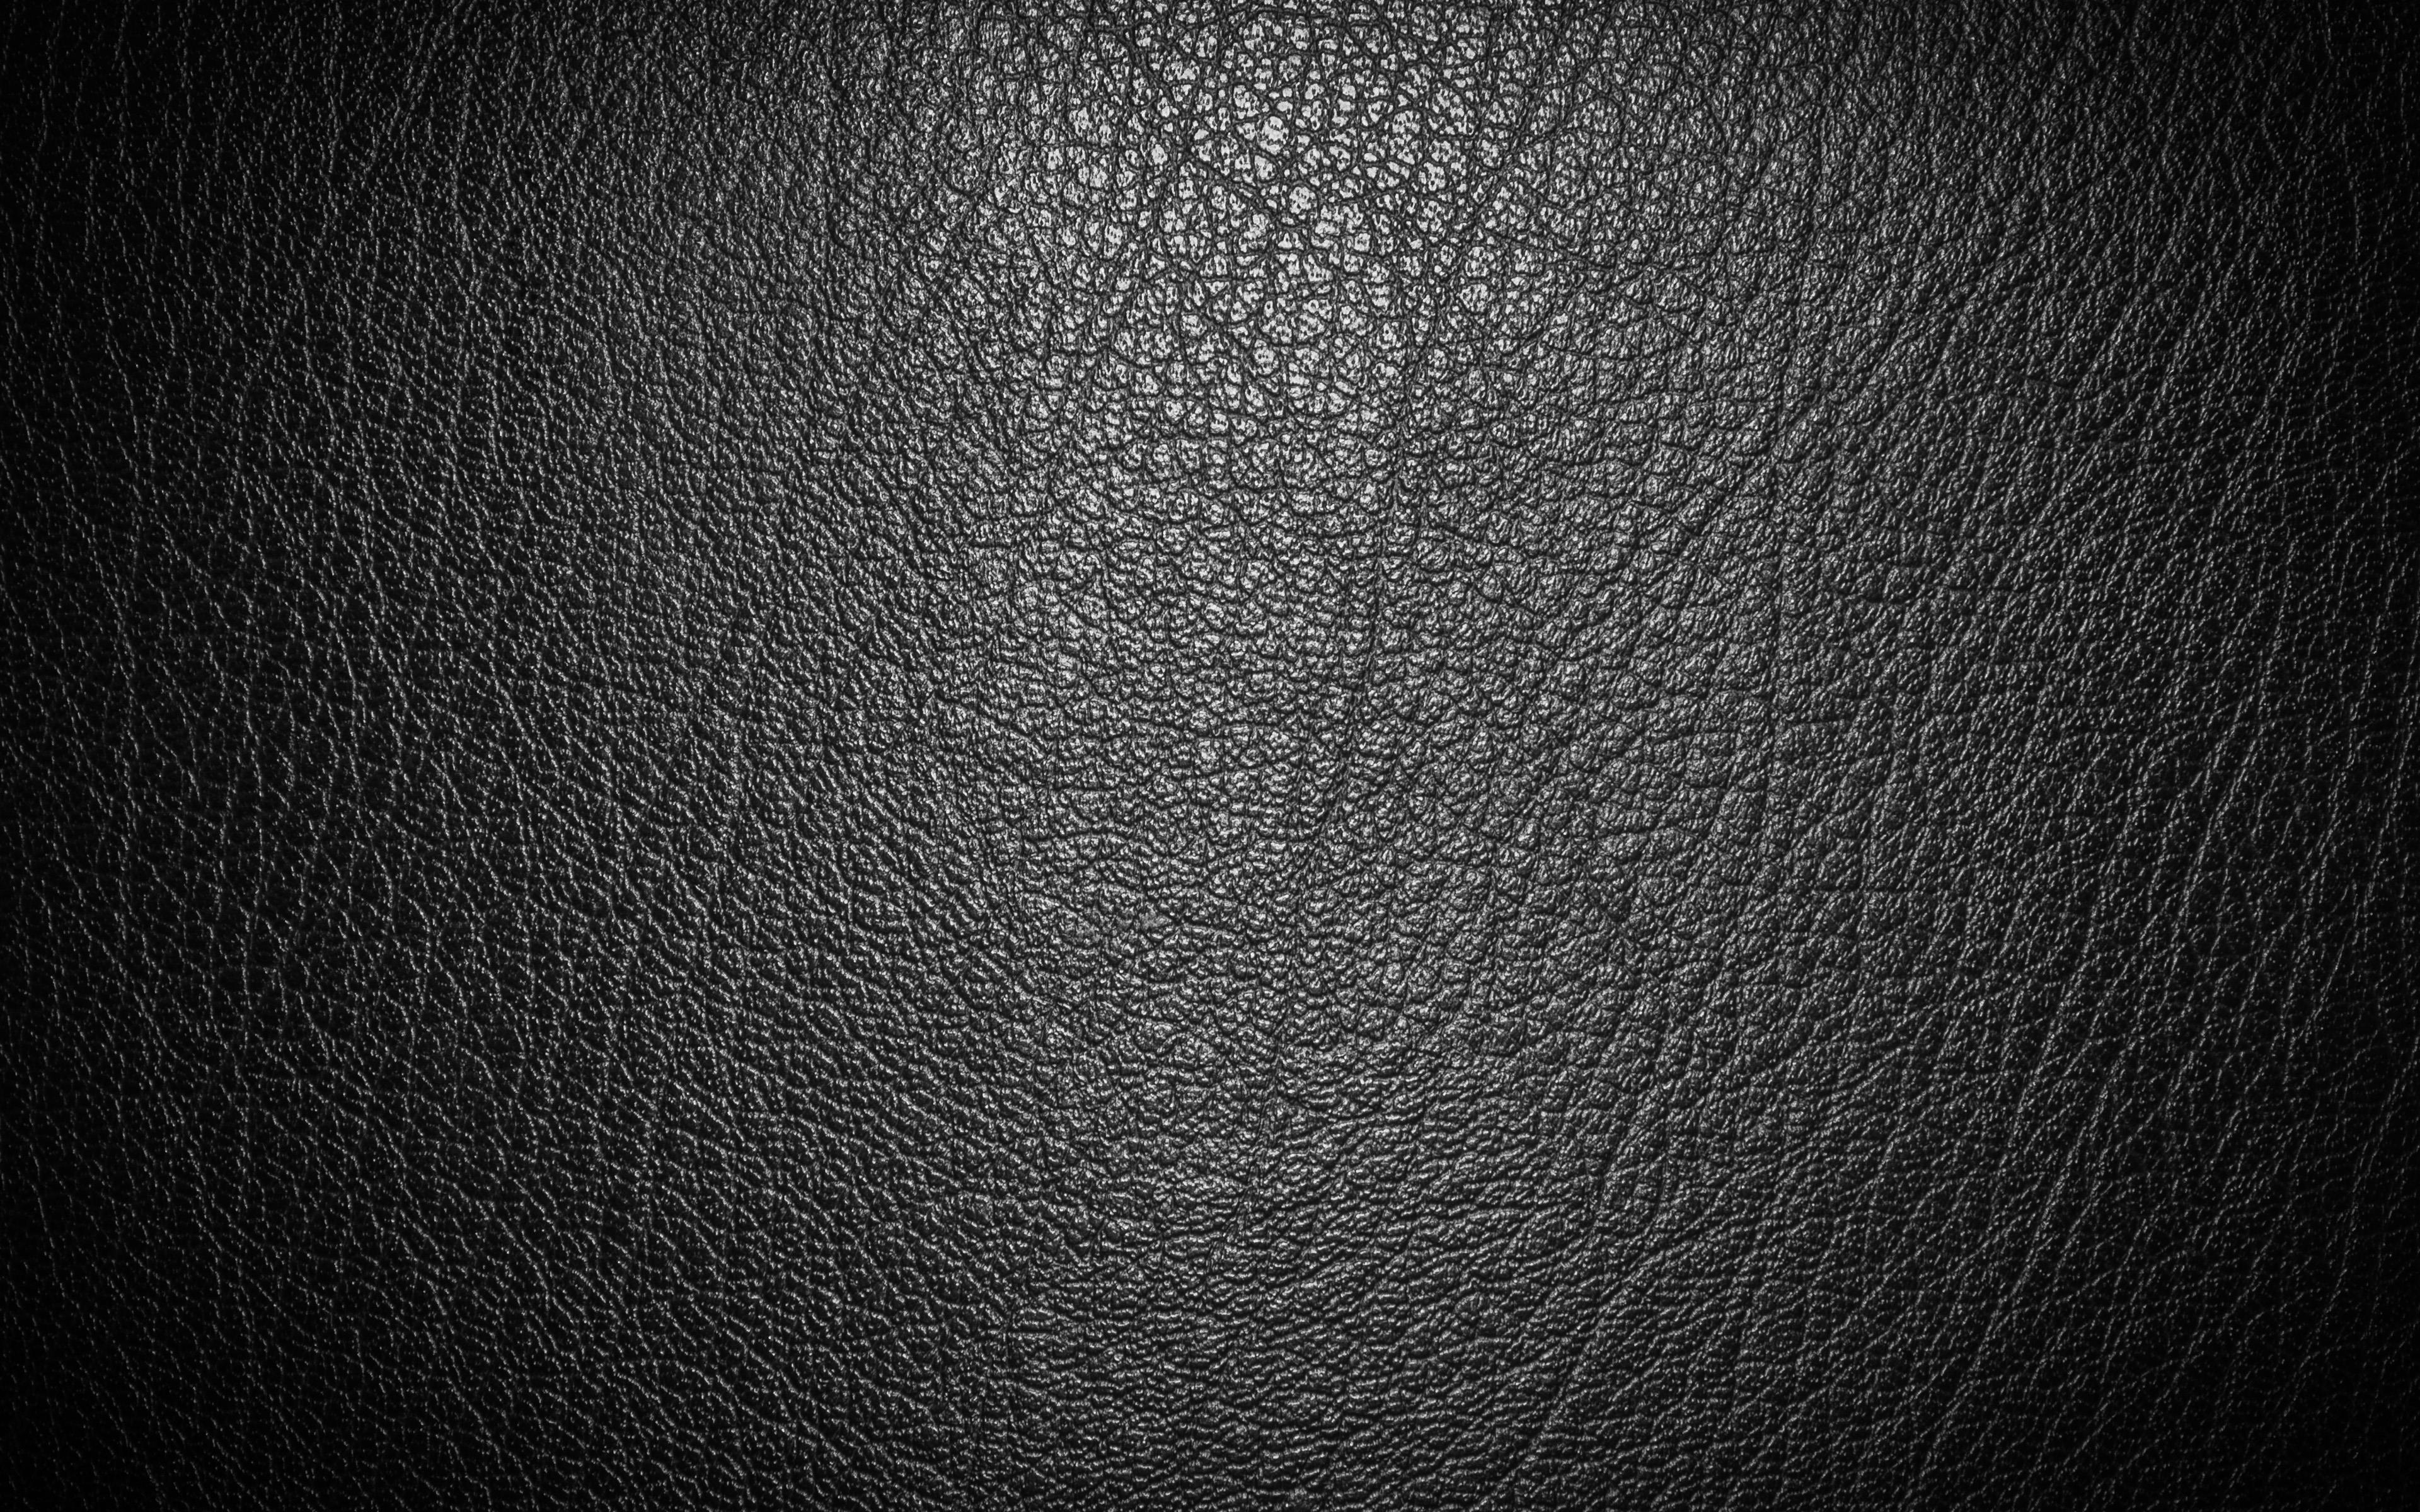 3840x2400 Download wallpapers black leather texture, 4k, fabric ...